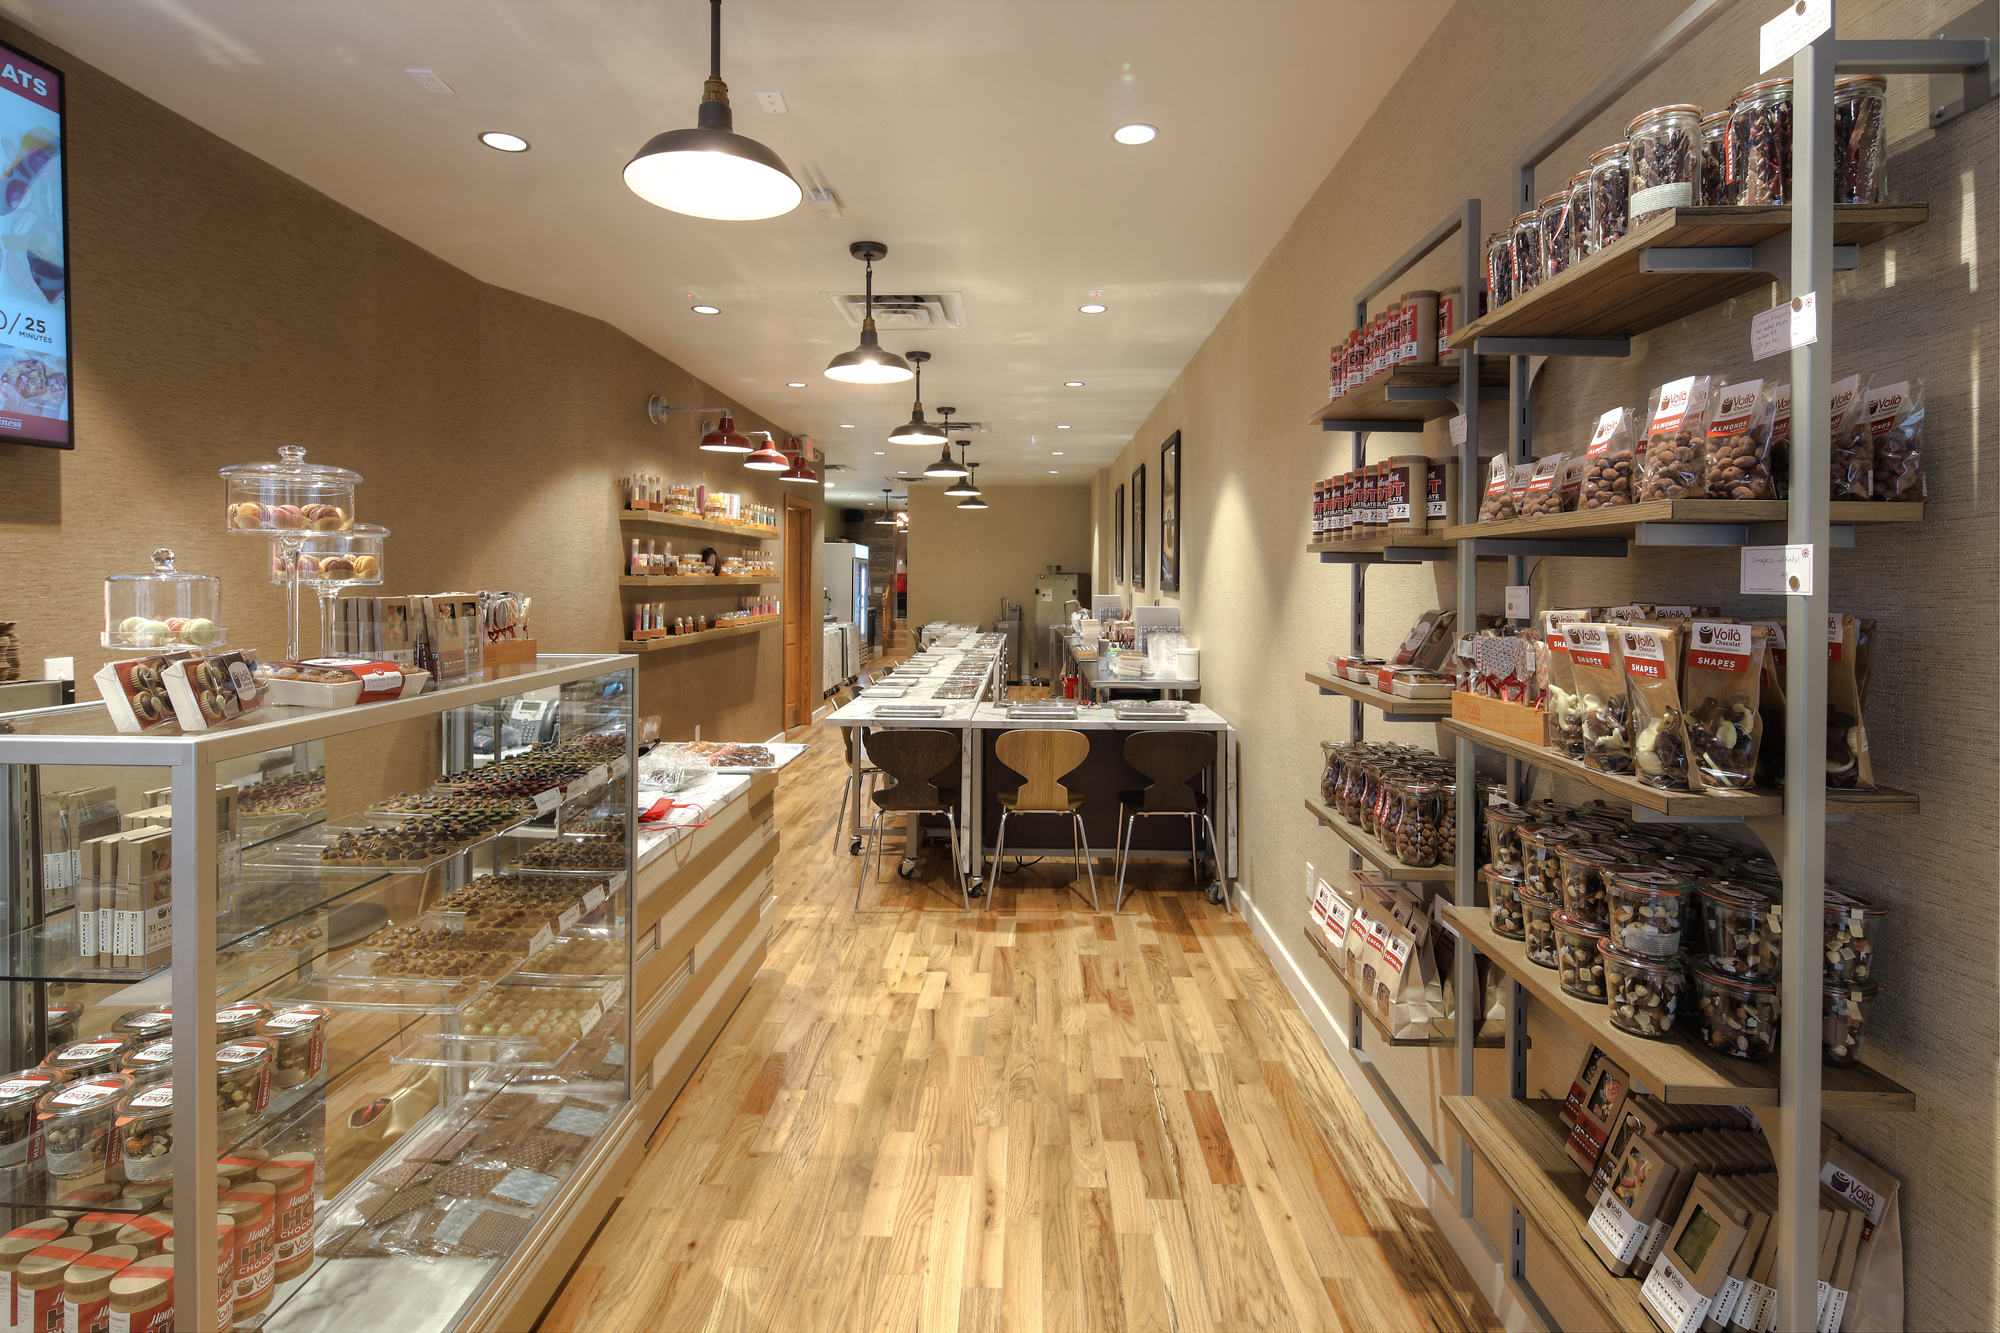 Voila Chocolat Atelier event space at Voila Chocolat in New York City, NYC, NY/NJ Area